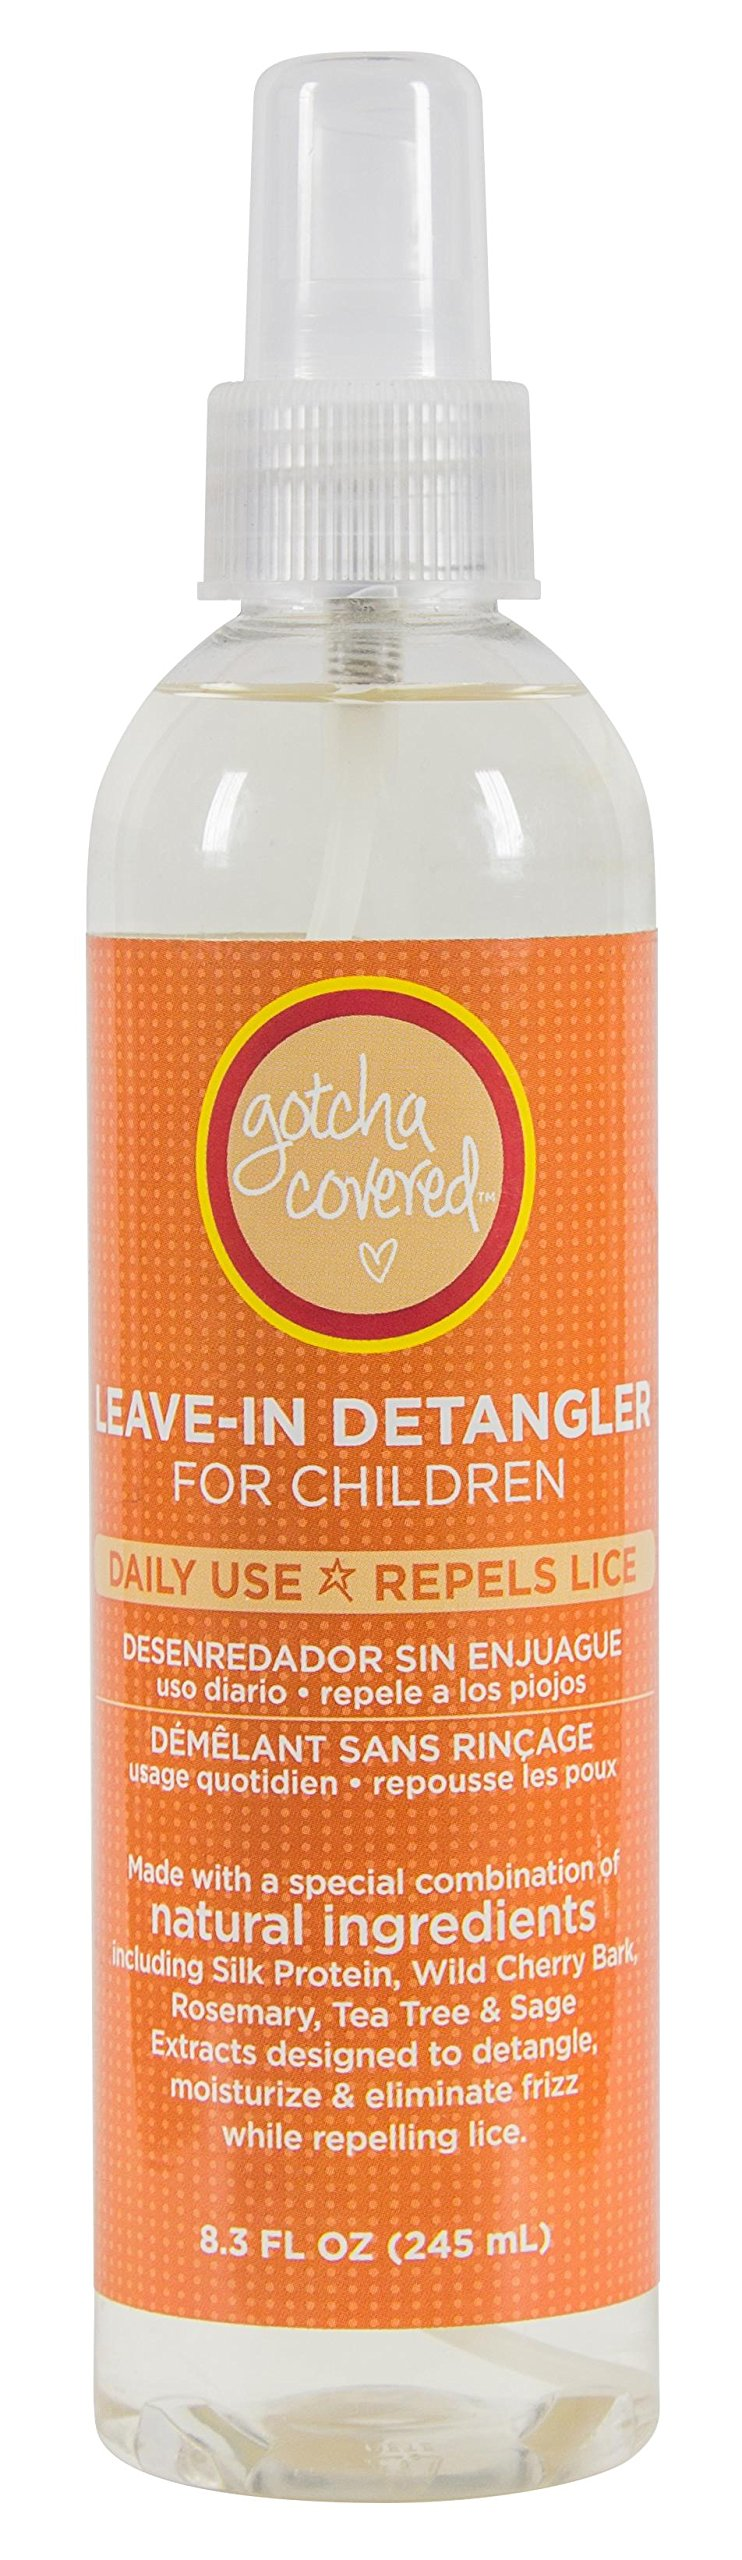 All Natural Head Lice Prevention Head Lice Leave-in Detangler for Adults and Kids, by Gotcha Covered, 8.3 fl. oz